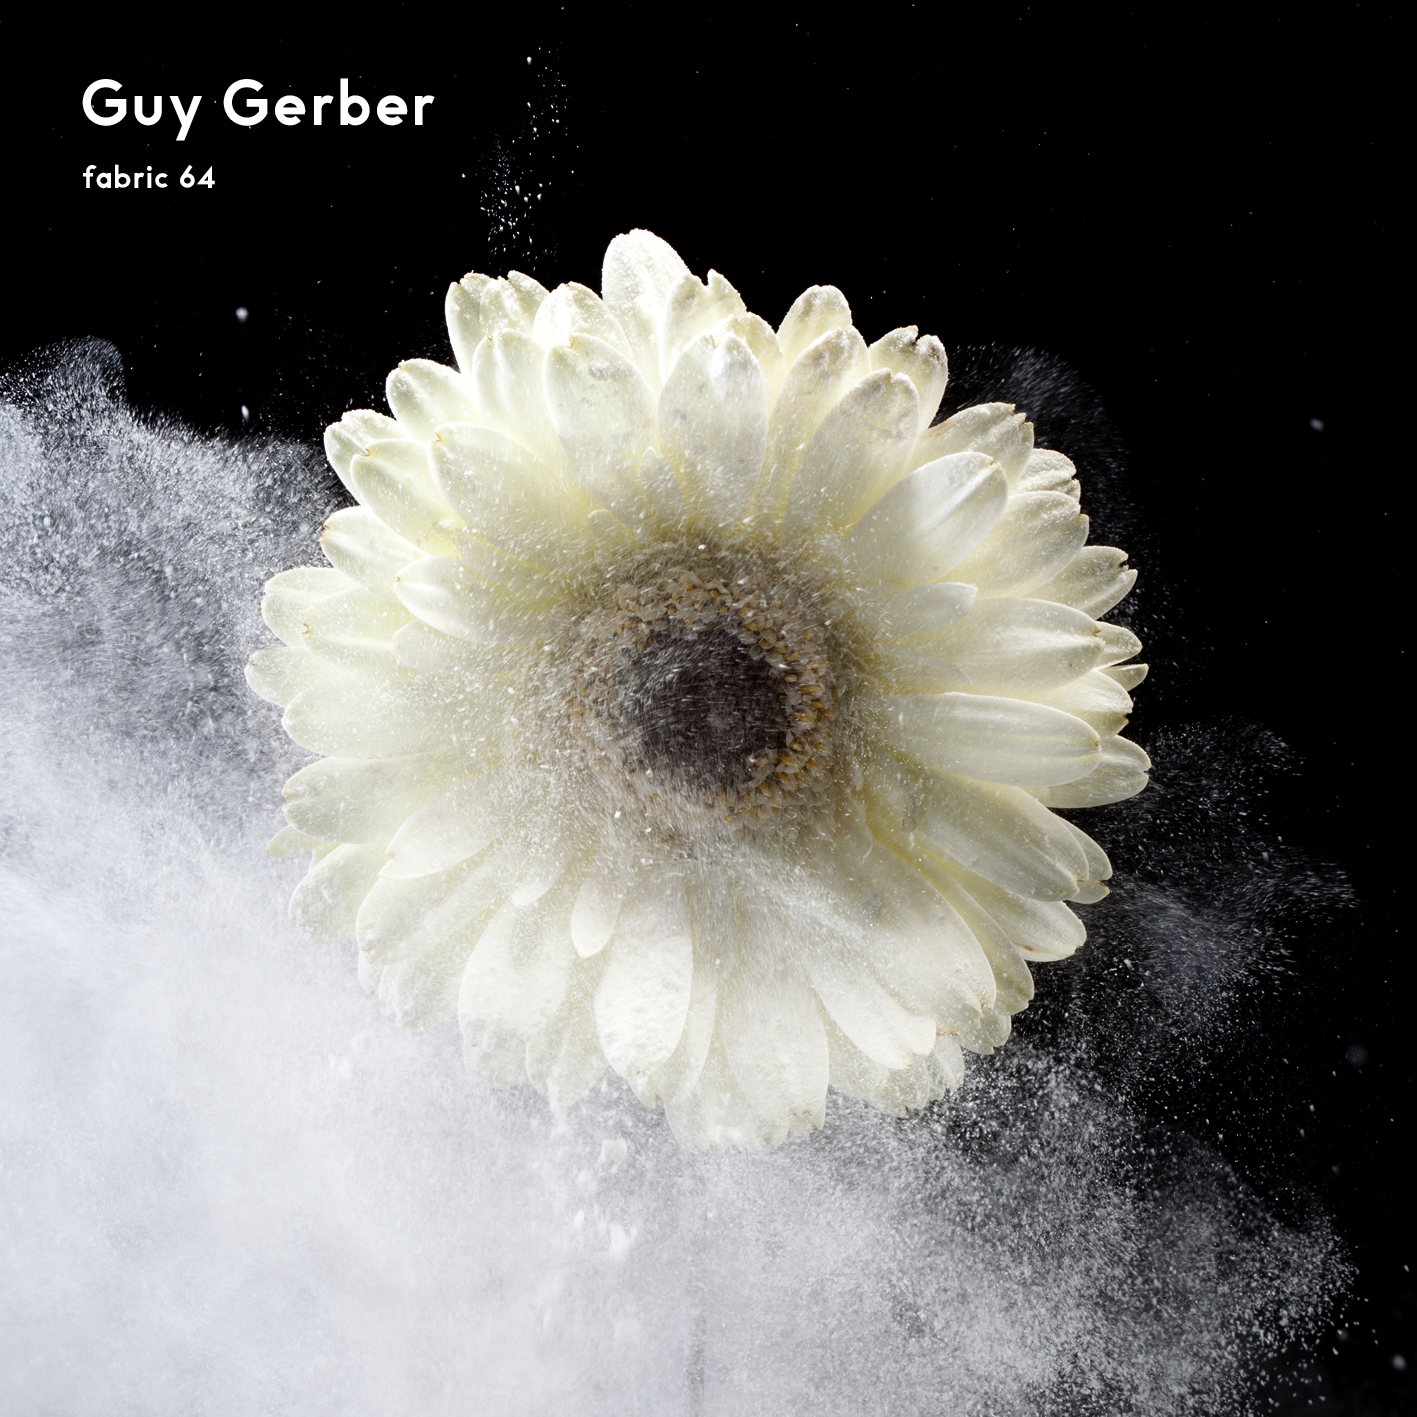 fabric64-guy gerber